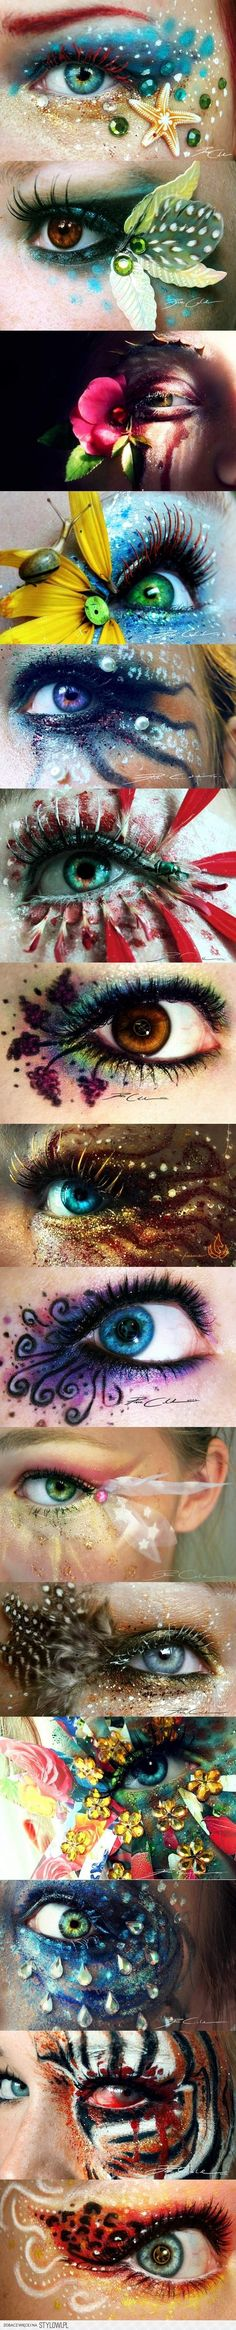 Incredible eye makeup art  #WinWayneGossTheCollection